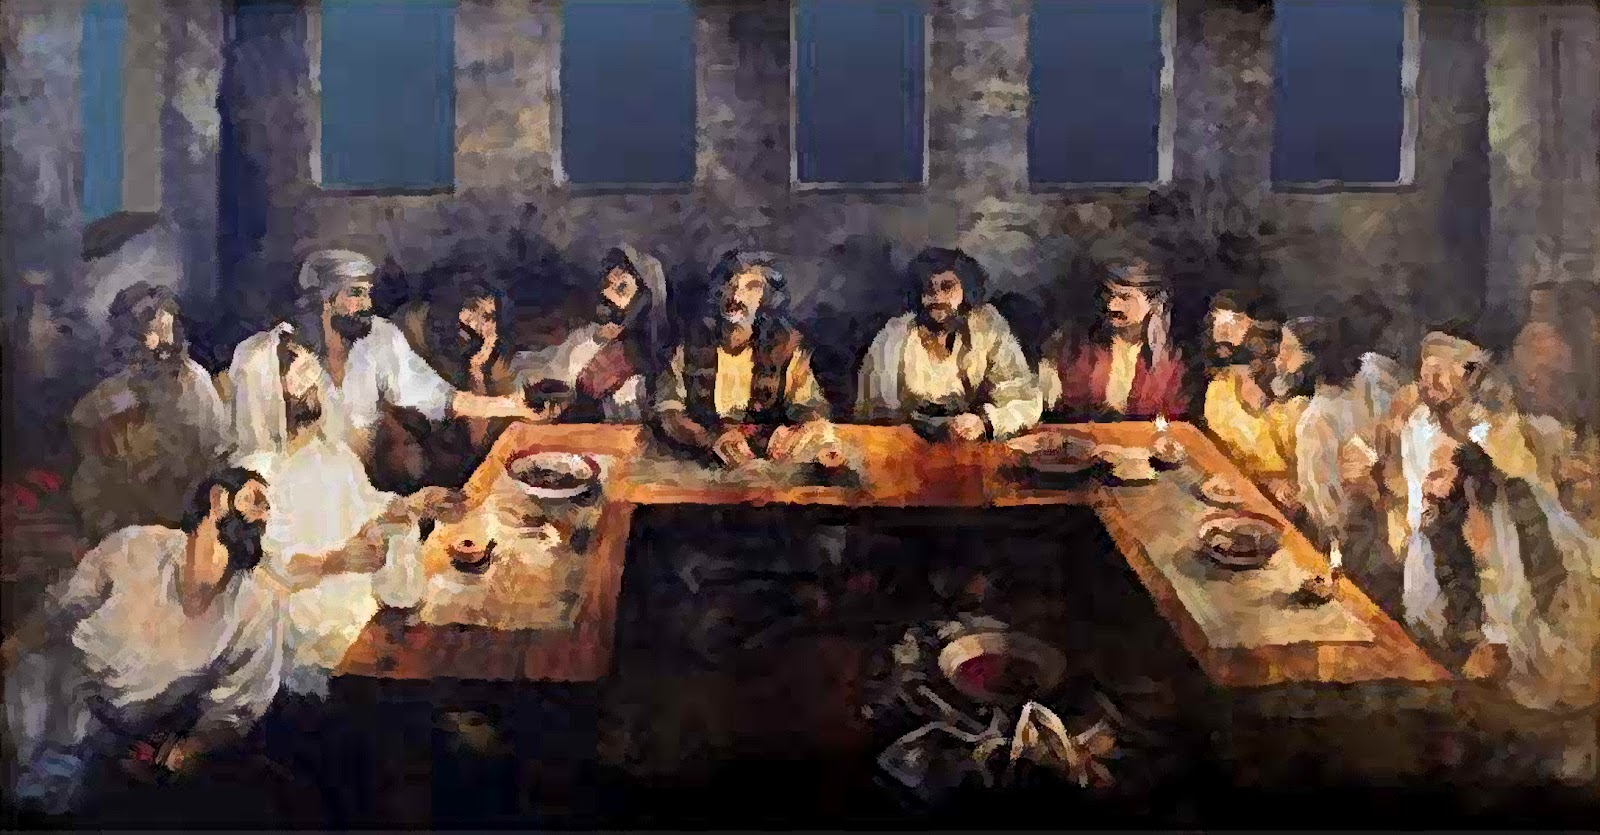 LDS Sabbath Passover Jesus Last Supper